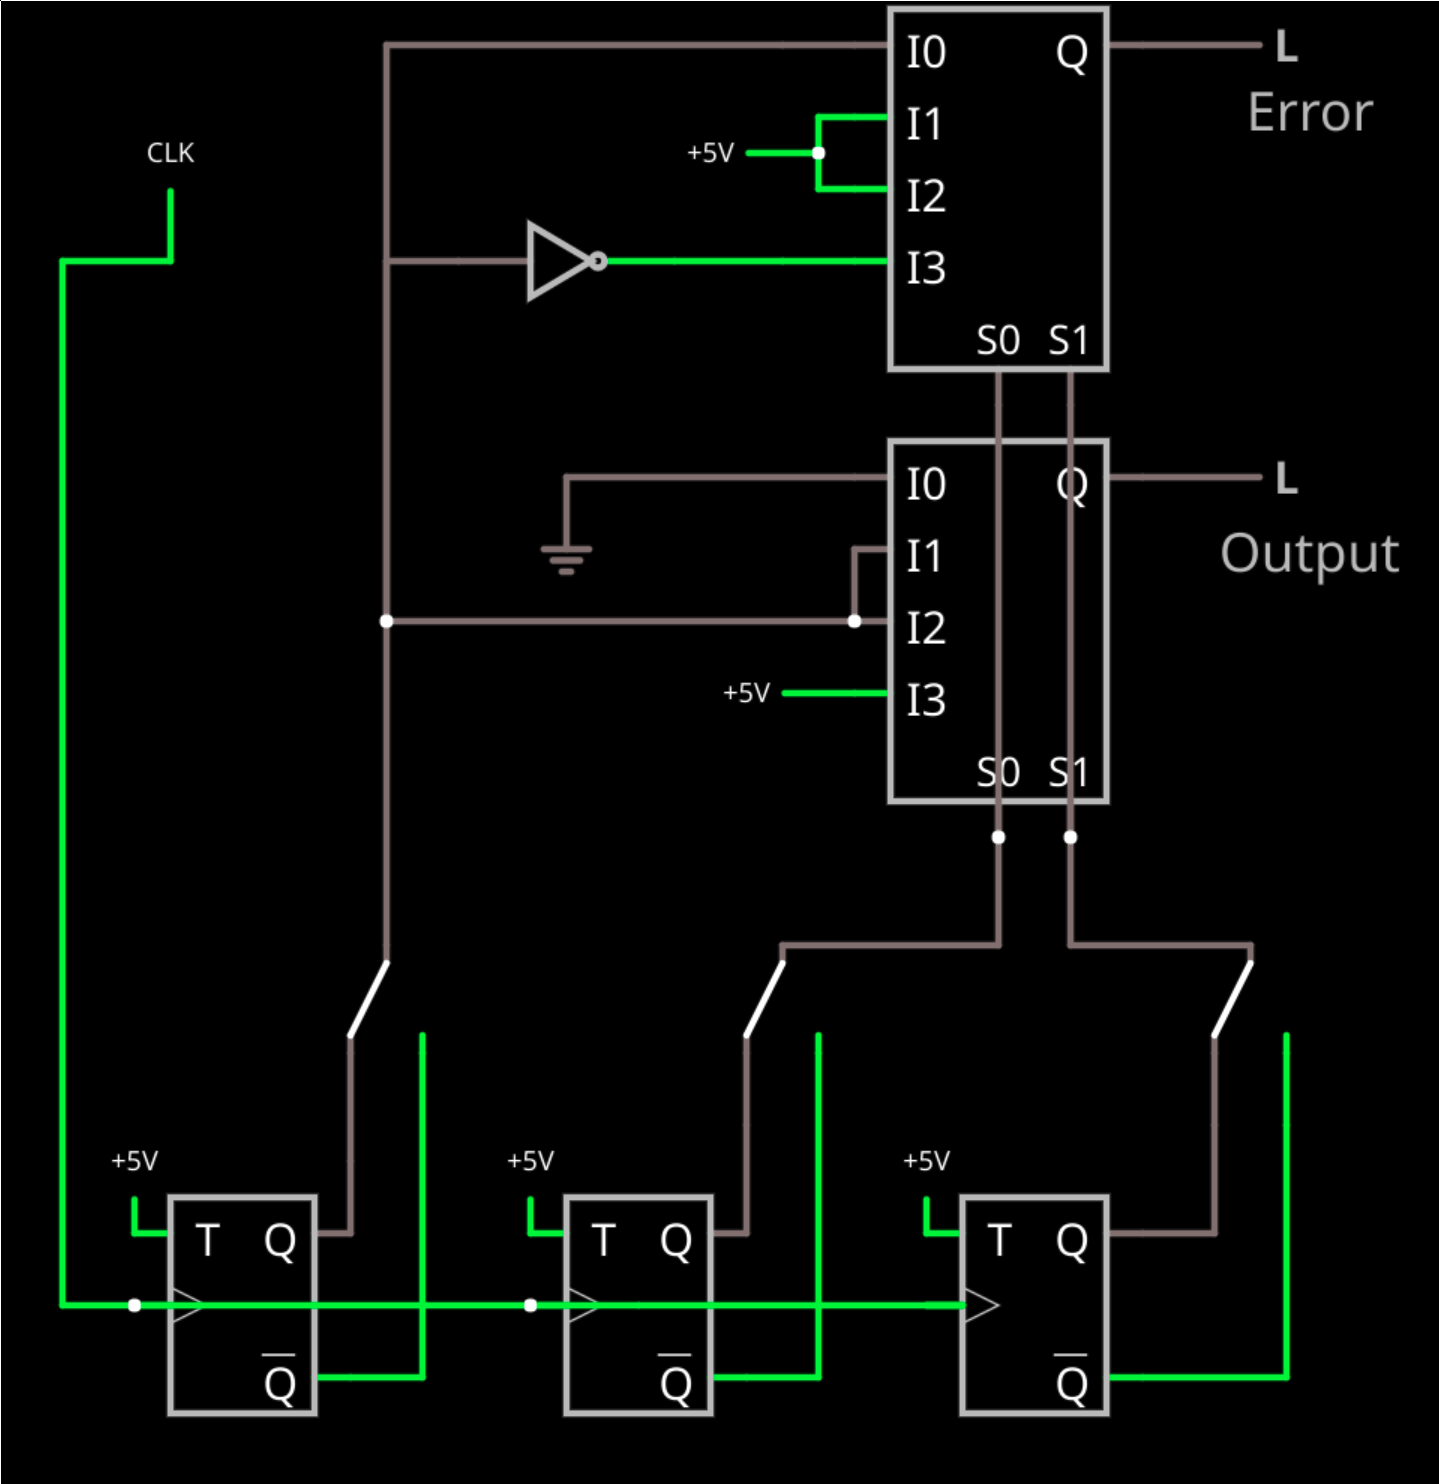 hight resolution of some fpgas have multiplexers or can configure them quite easily here s a circuit that not only votes but uses another mux to detect if there is an error